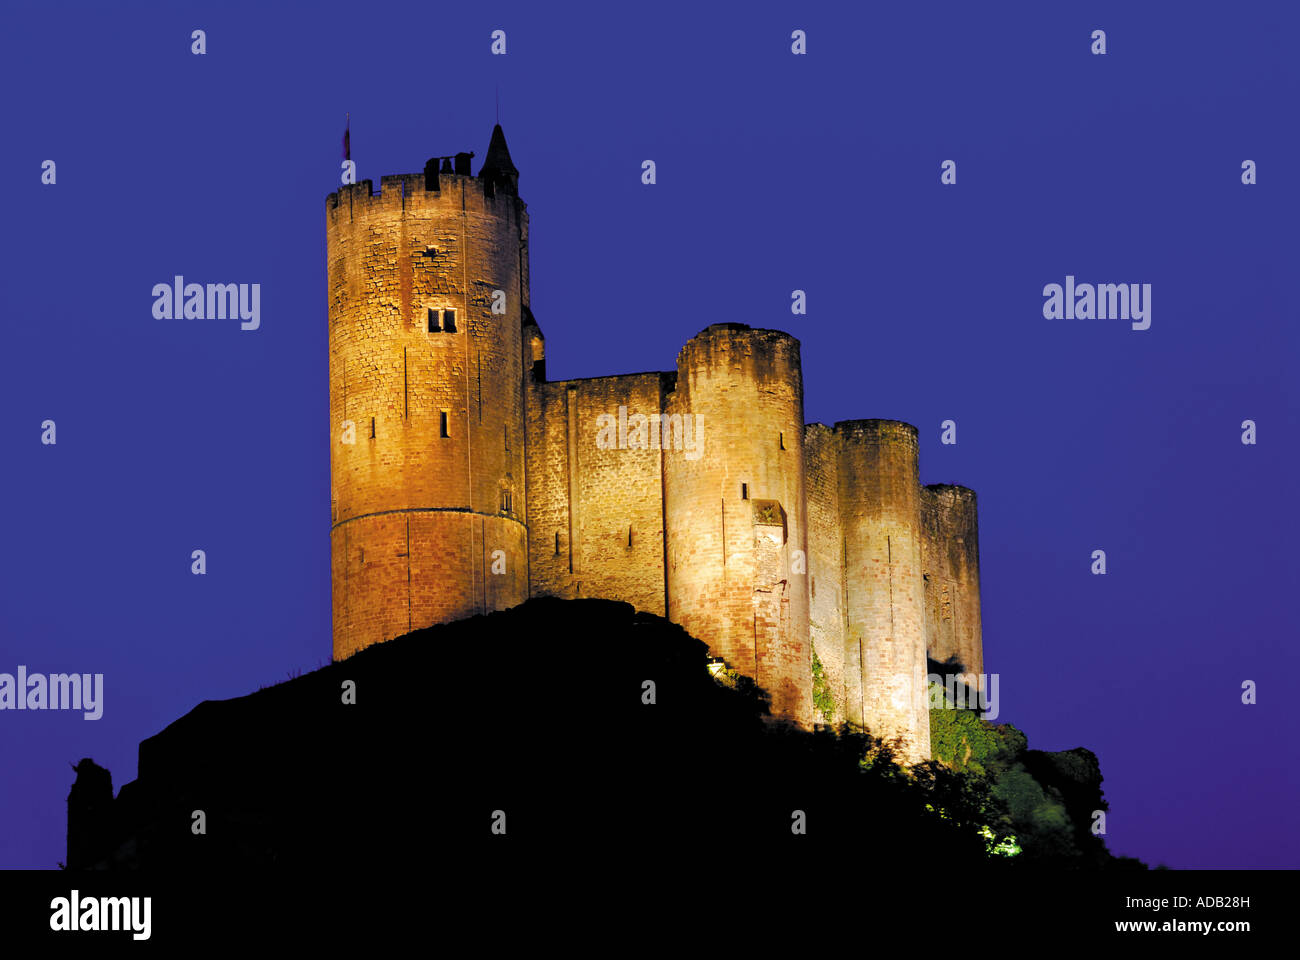 Castle of Najac by night, Najac, Midi-Pyrenees, France - Stock Image